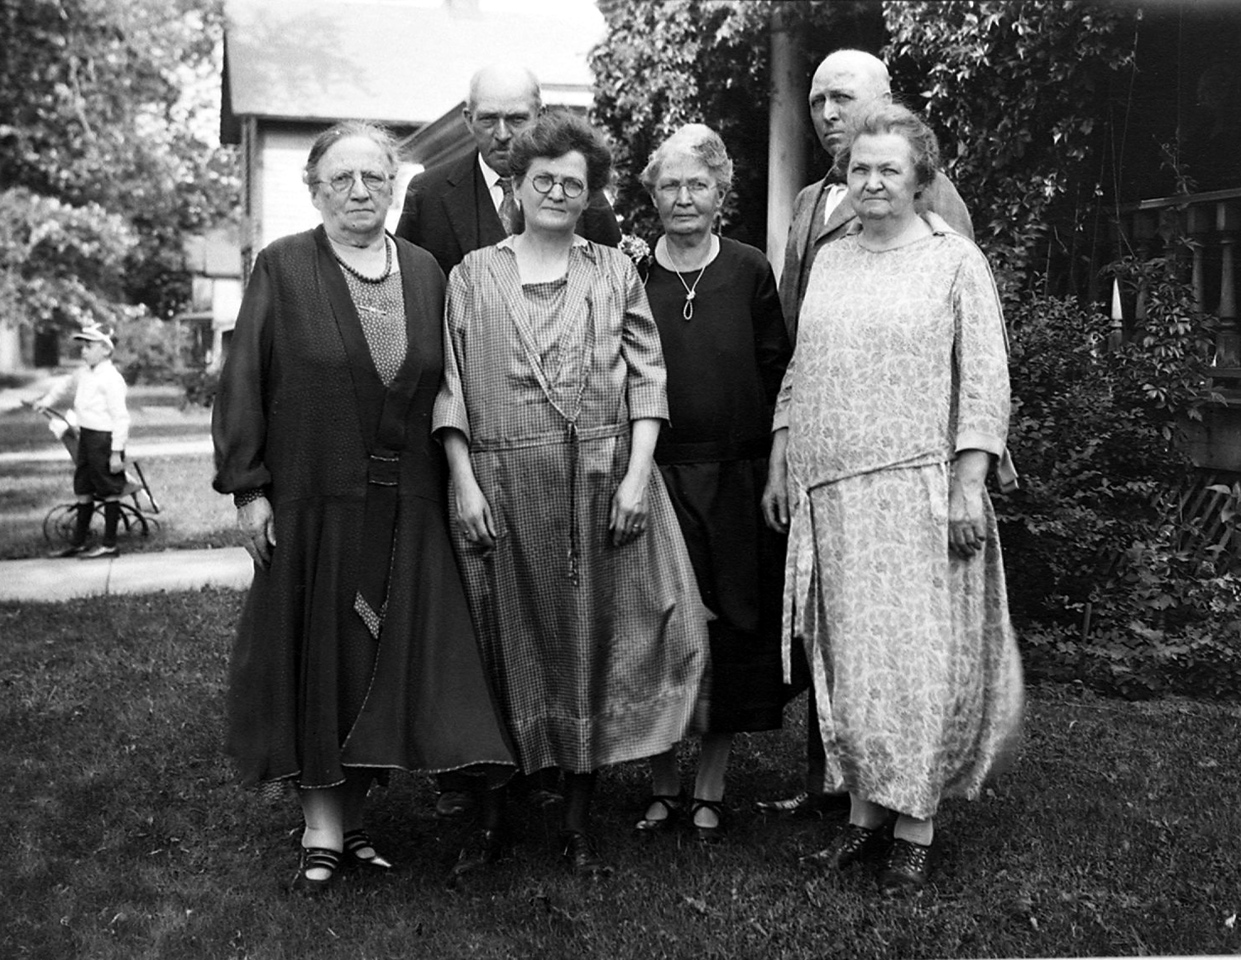 Granmother O'Brien, Aunt Nellie ? in front. Uncle Ed on left and Uncle Dot on right.